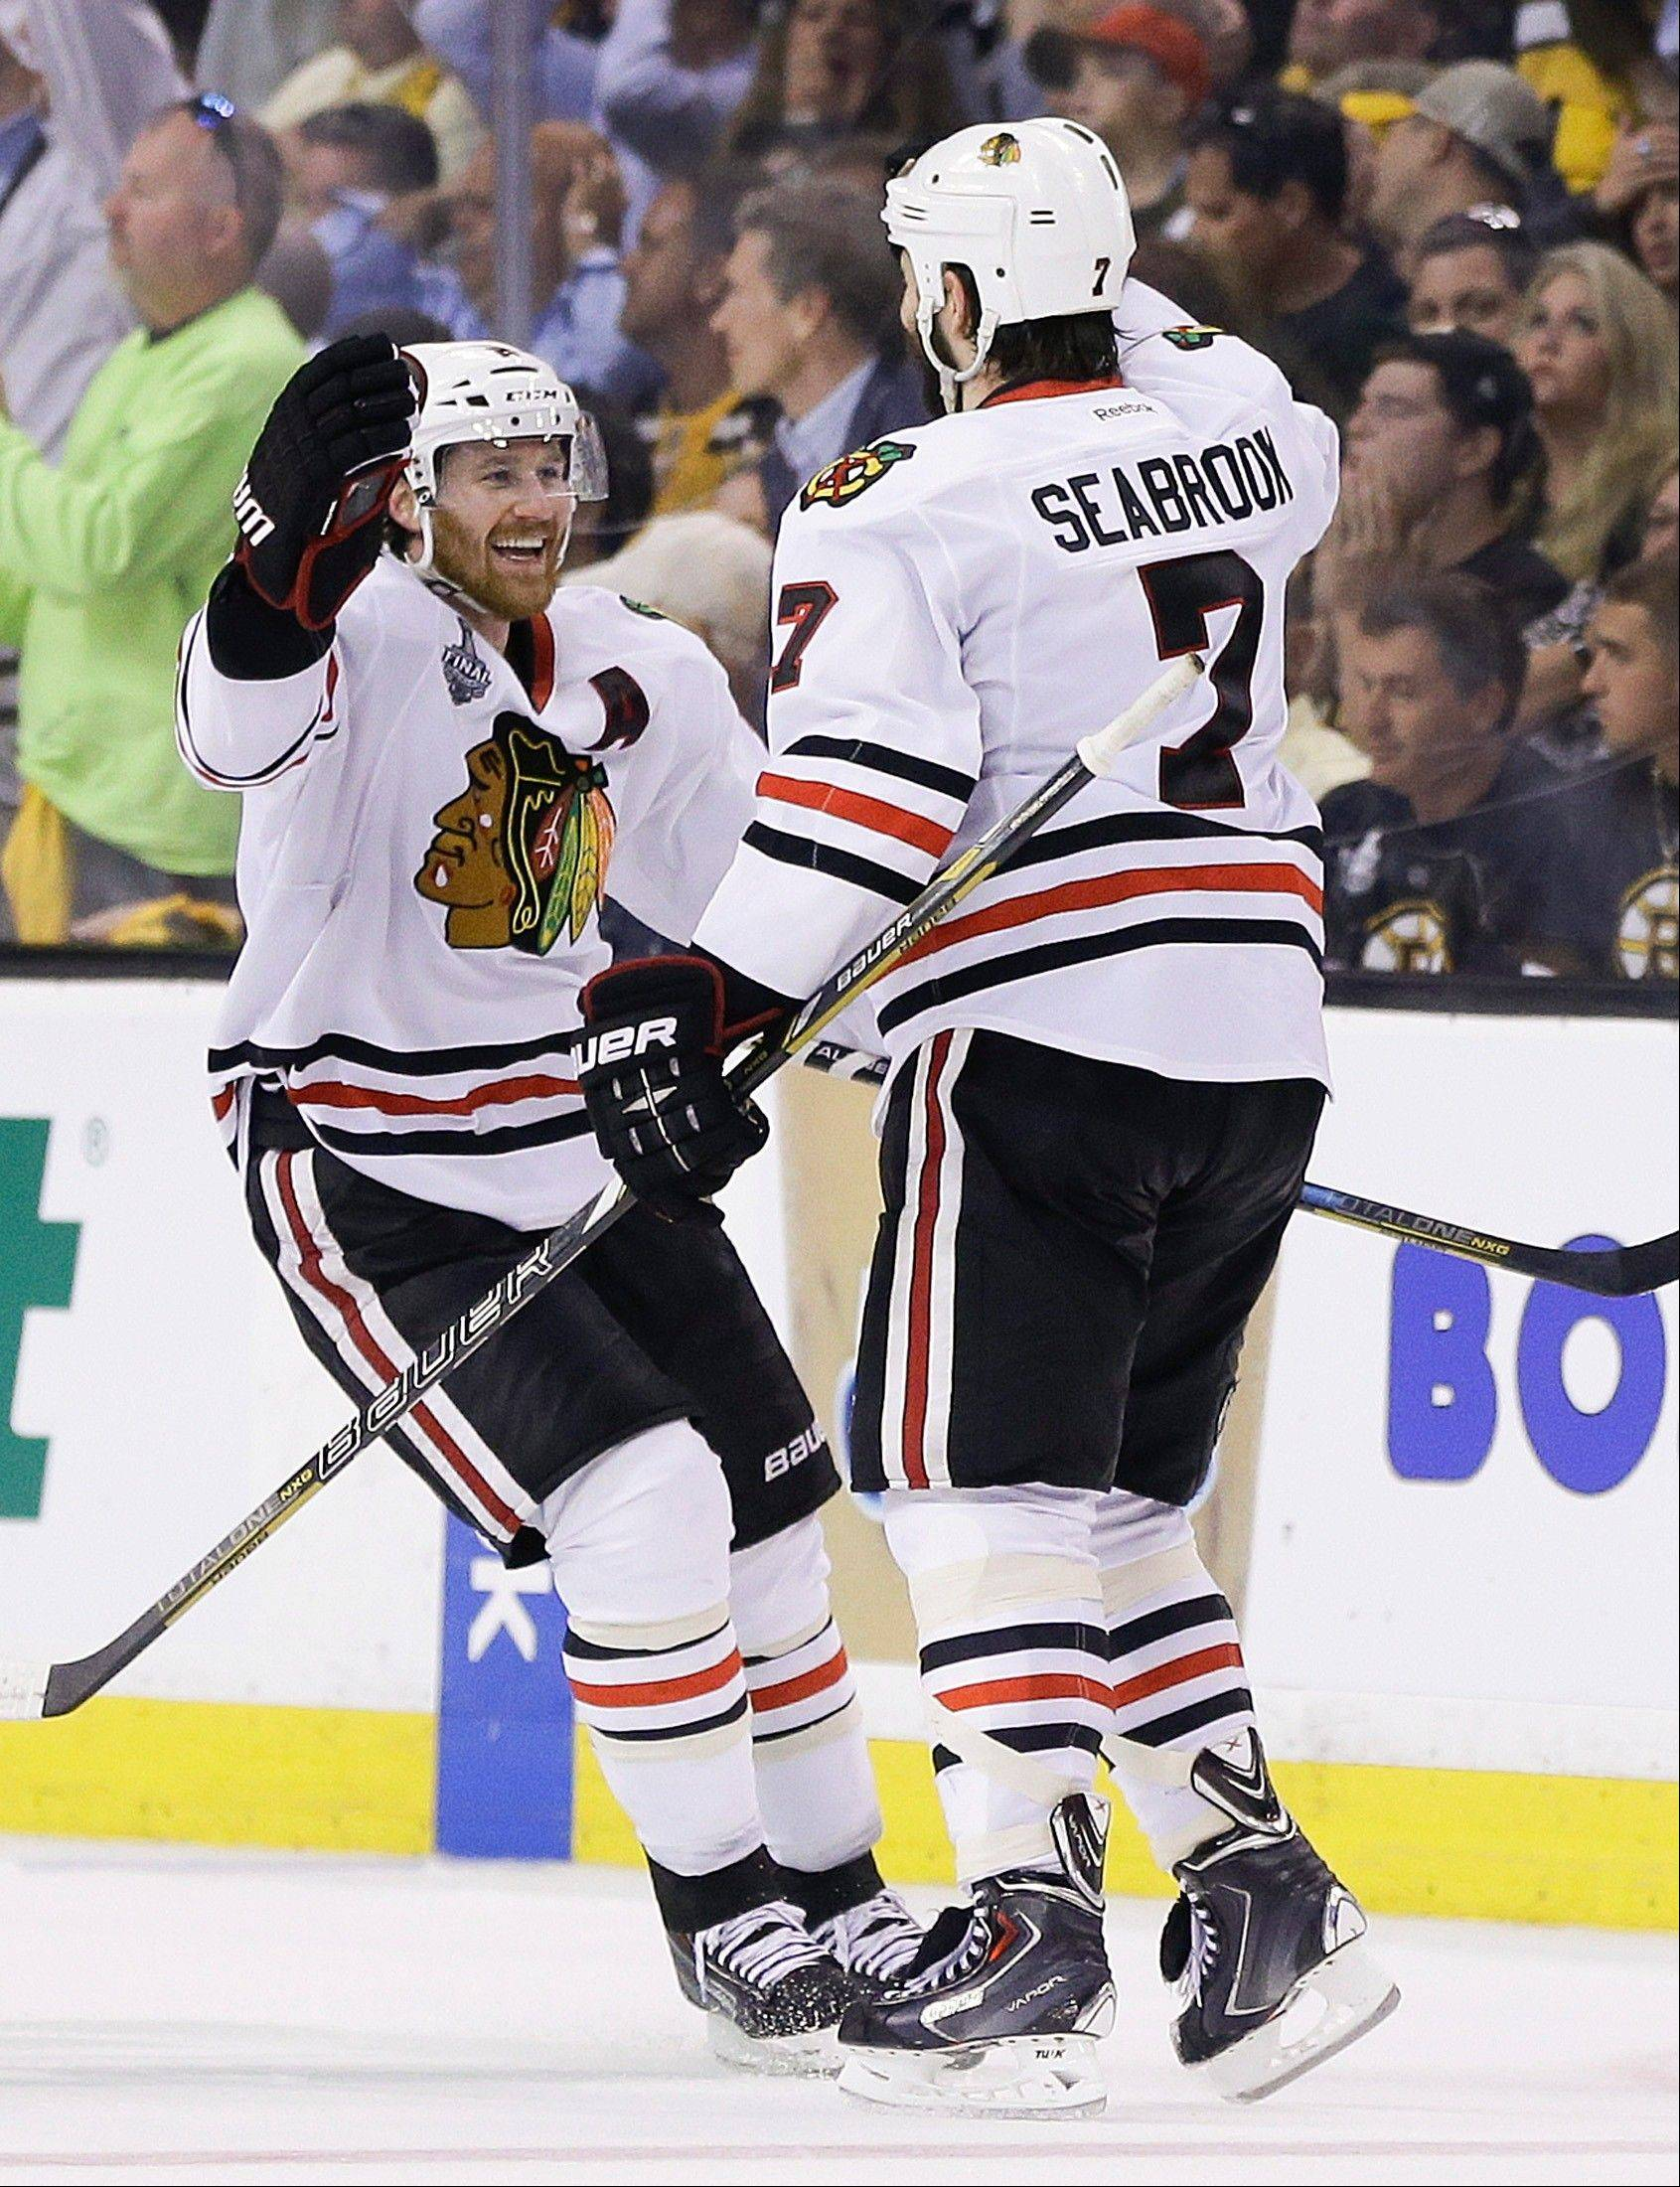 Chicago Blackhawks defenseman Brent Seabrook (7) celebrates his game-winning goal against the Boston Bruins with defenseman Duncan Keith (2) during the first overtime period in Game 4 of the NHL hockey Stanley Cup Finals, Chicago won 6-5 in overtime.